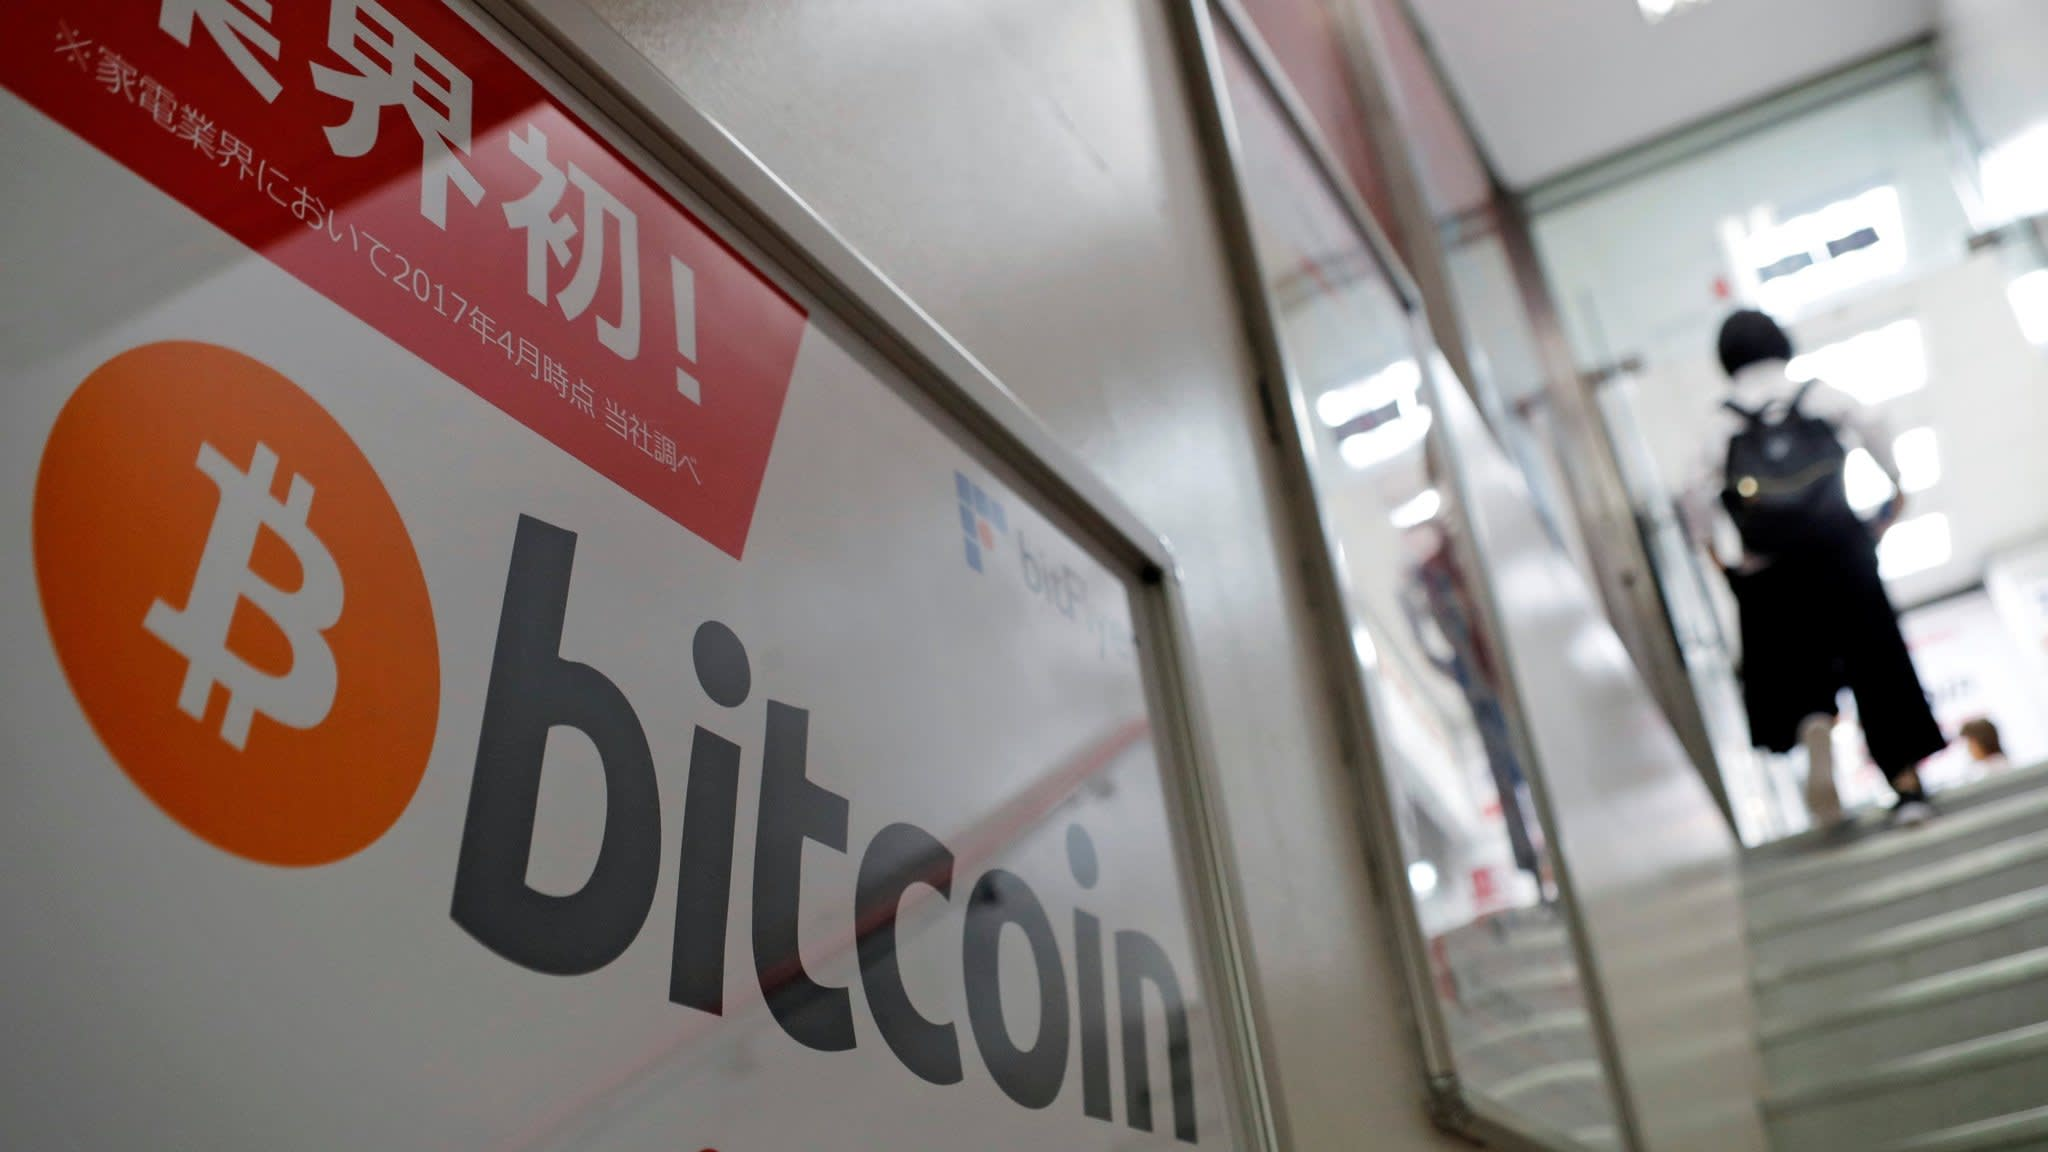 A logo of Bitcoin is seen on an advertisement of an electronic shop in Tokyo, Japan September 5, 2017. REUTERS/Kim Kyung-Hoon